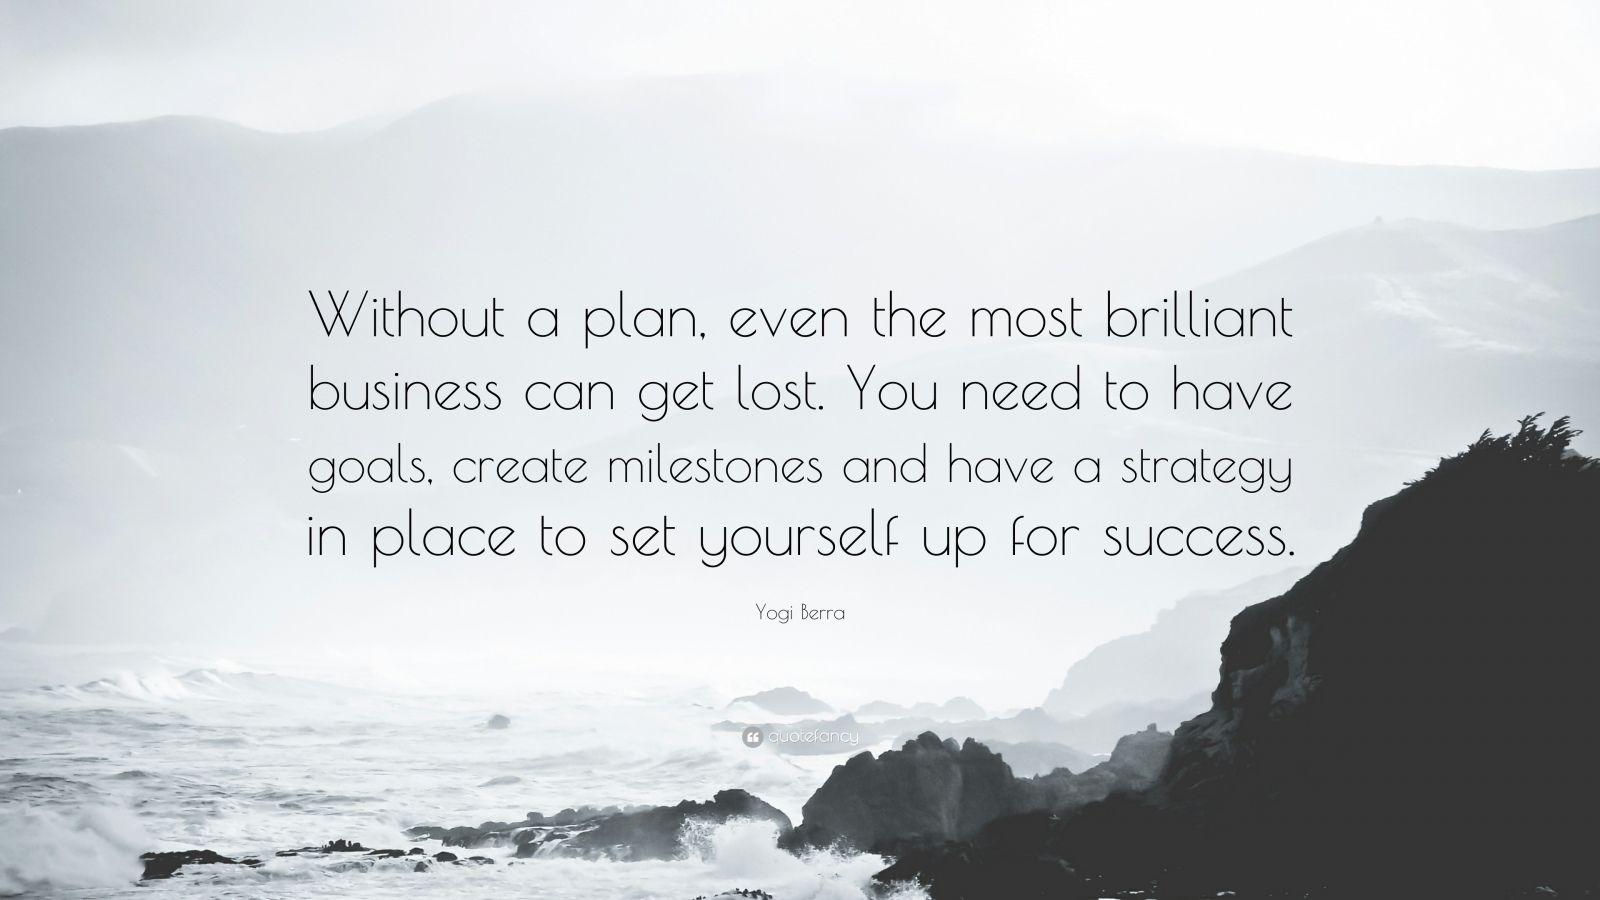 """Yogi Berra Quote: """"Without a plan, even the most brilliant business can get lost. You need to have goals, create milestones and have a strategy in place to set yourself up for success."""""""